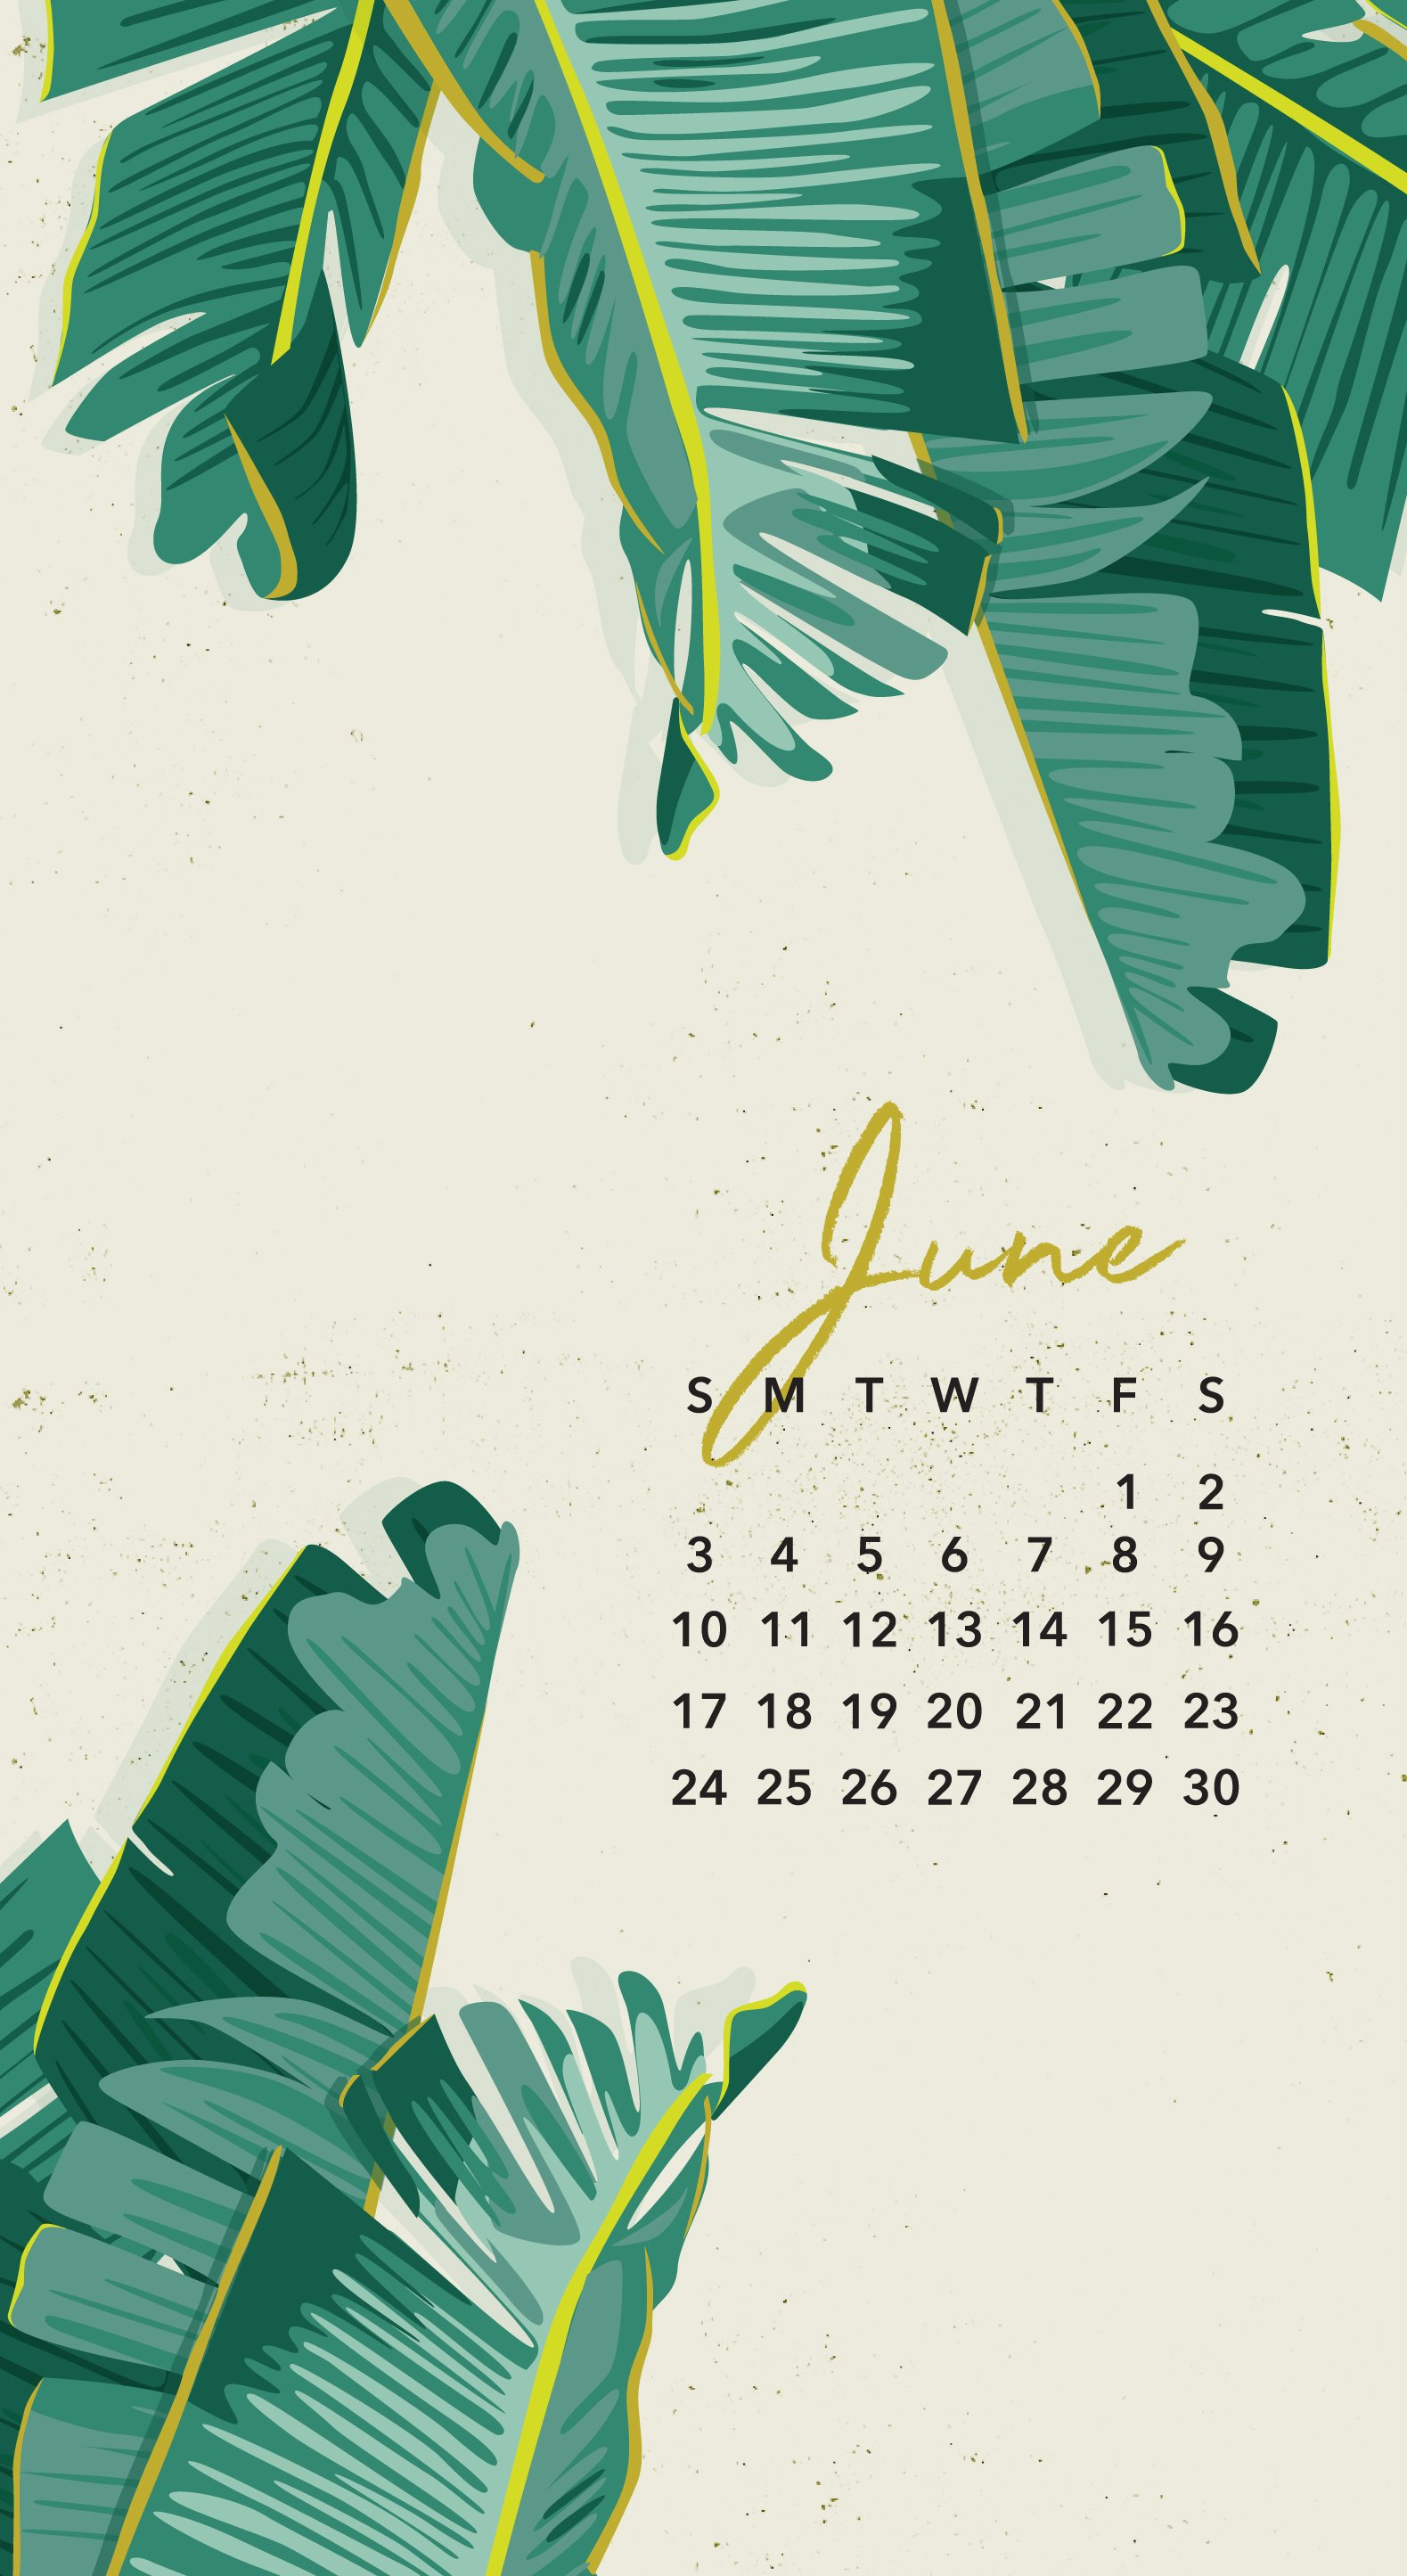 June 2018 Calendar Wallpaper 1579x2890